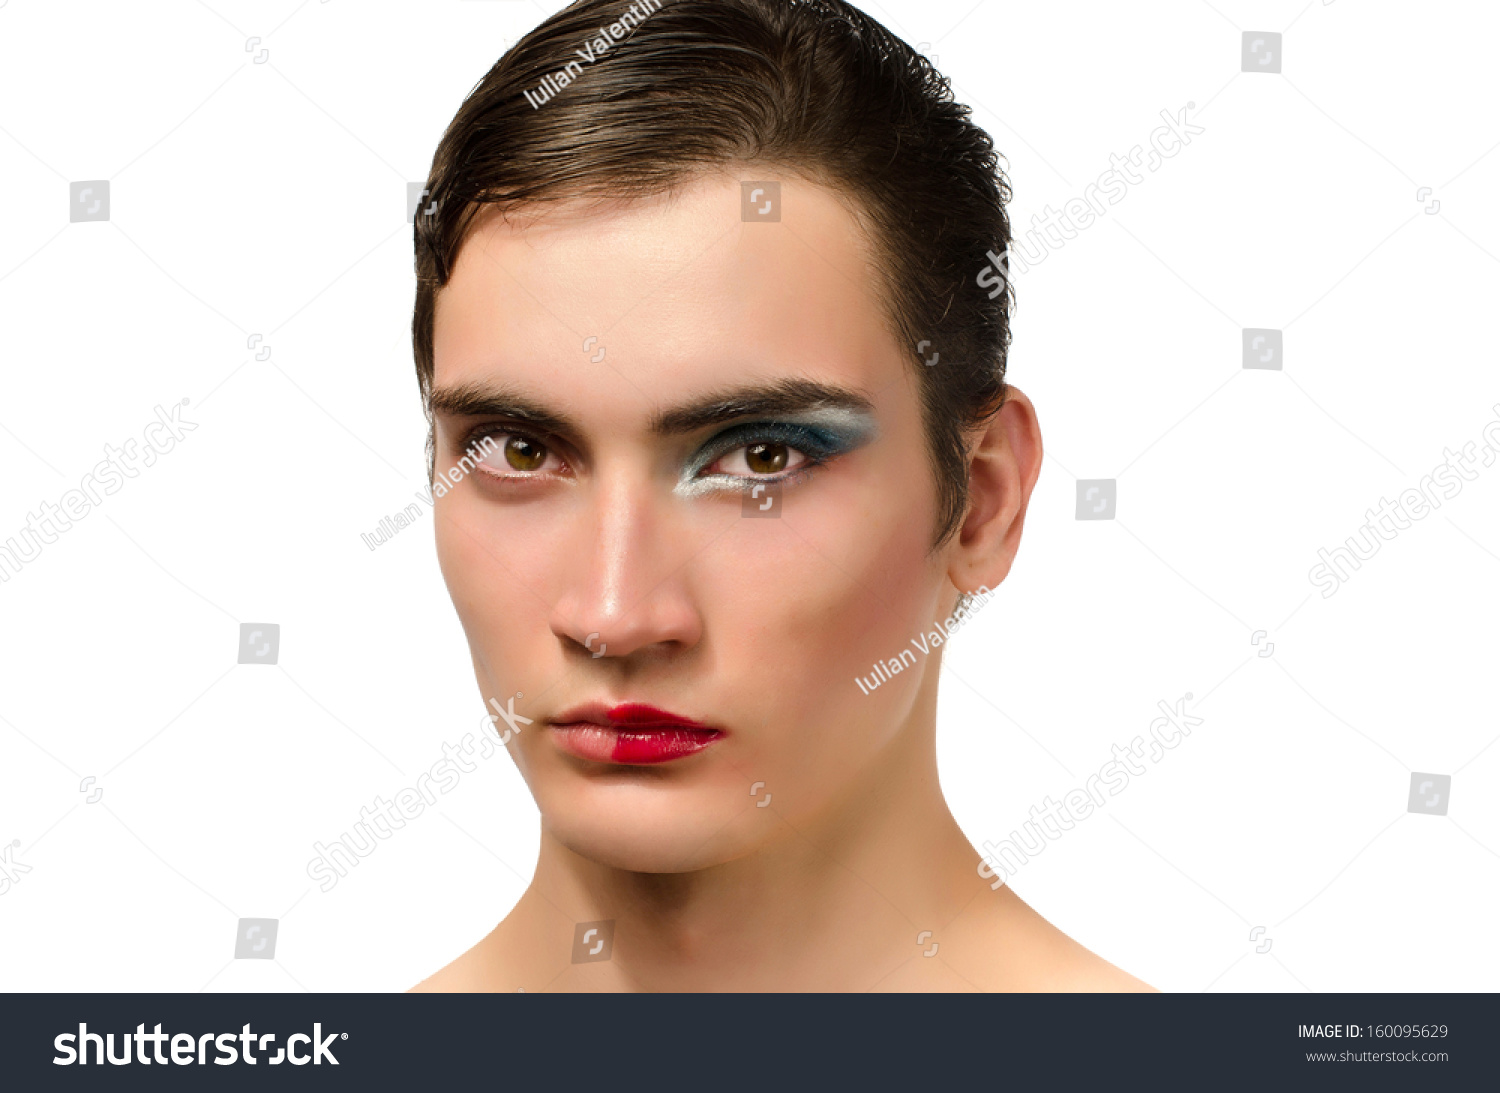 Man Wearing Make Up Portrait Of A Drag Queen Half Face